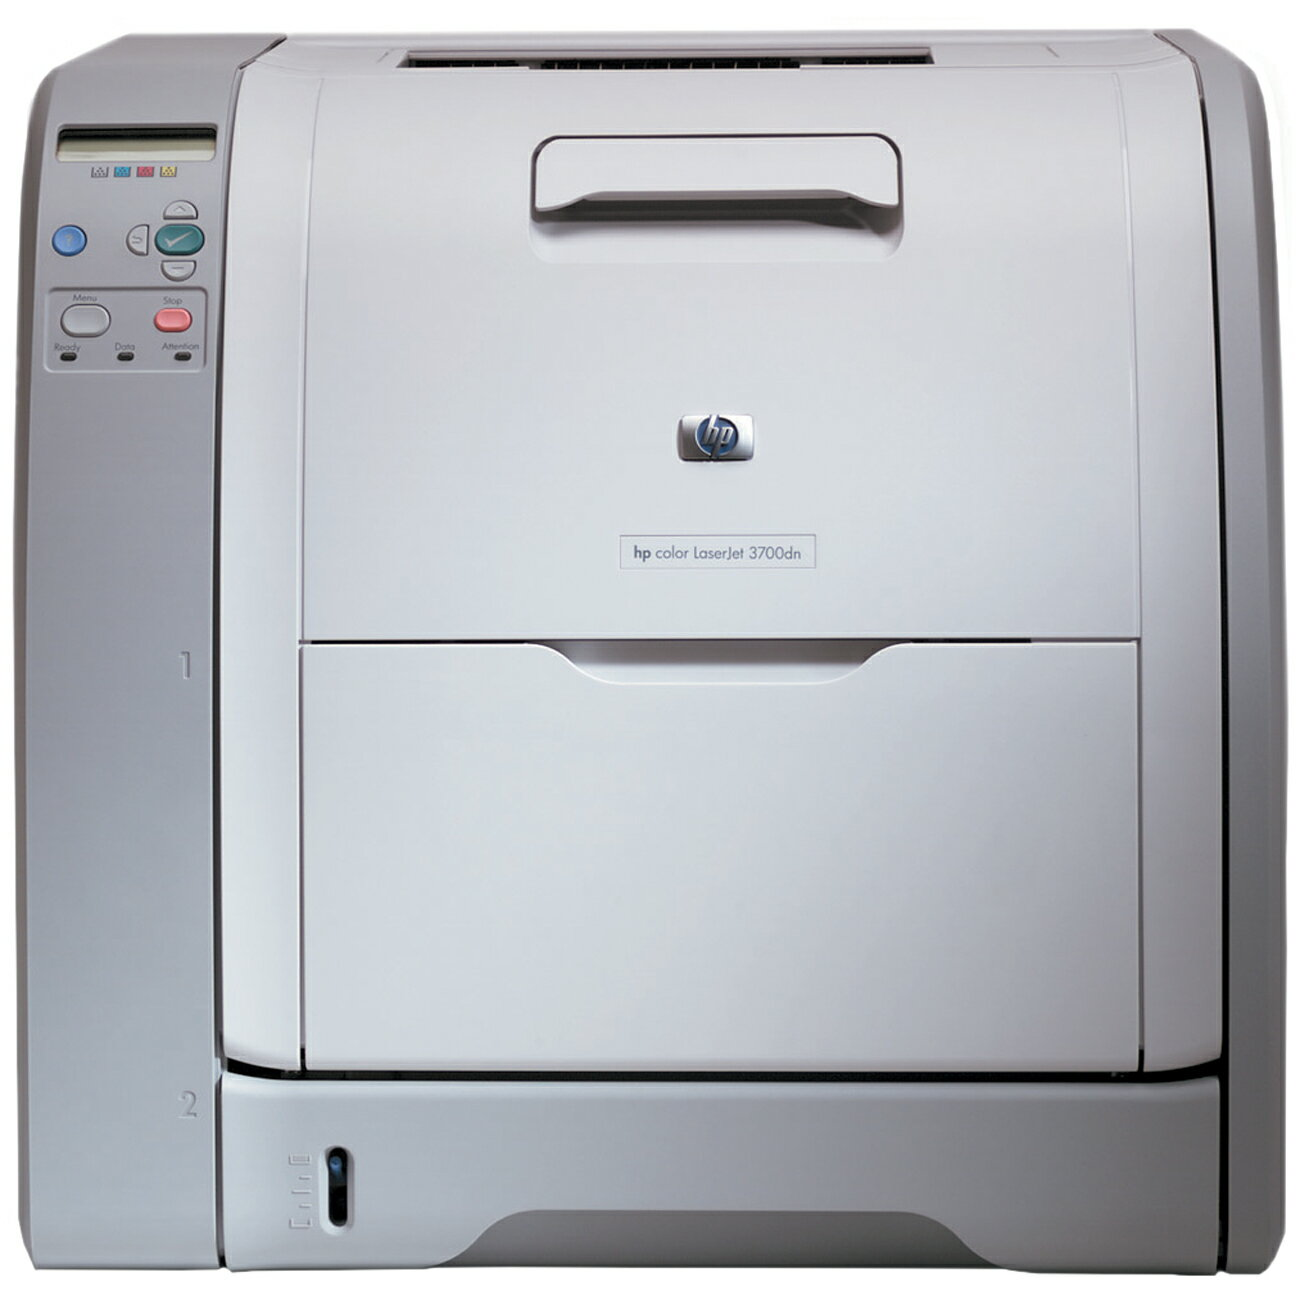 Refurbished HP LaserJet 3700DN Laser Printer - Color - 600 x 600 dpi Print - Plain Paper Print - Desktop - 16 ppm Mono / 16 ppm Color Print 0